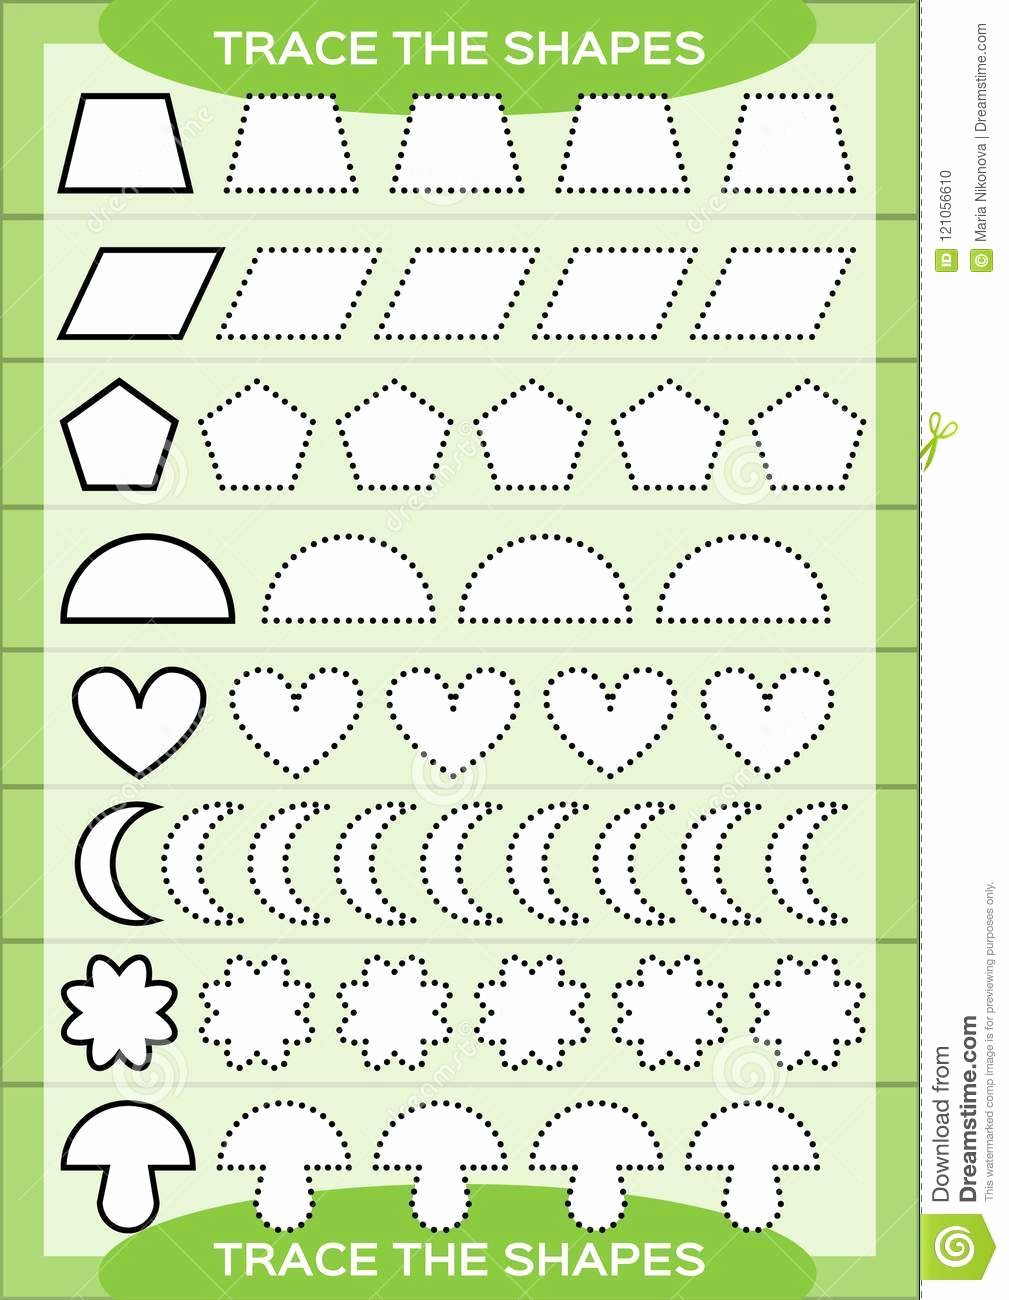 Fine Motor Skills Worksheets for Preschoolers Beautiful Trace the Shapes Kids Education Preschool Worksheet Basic